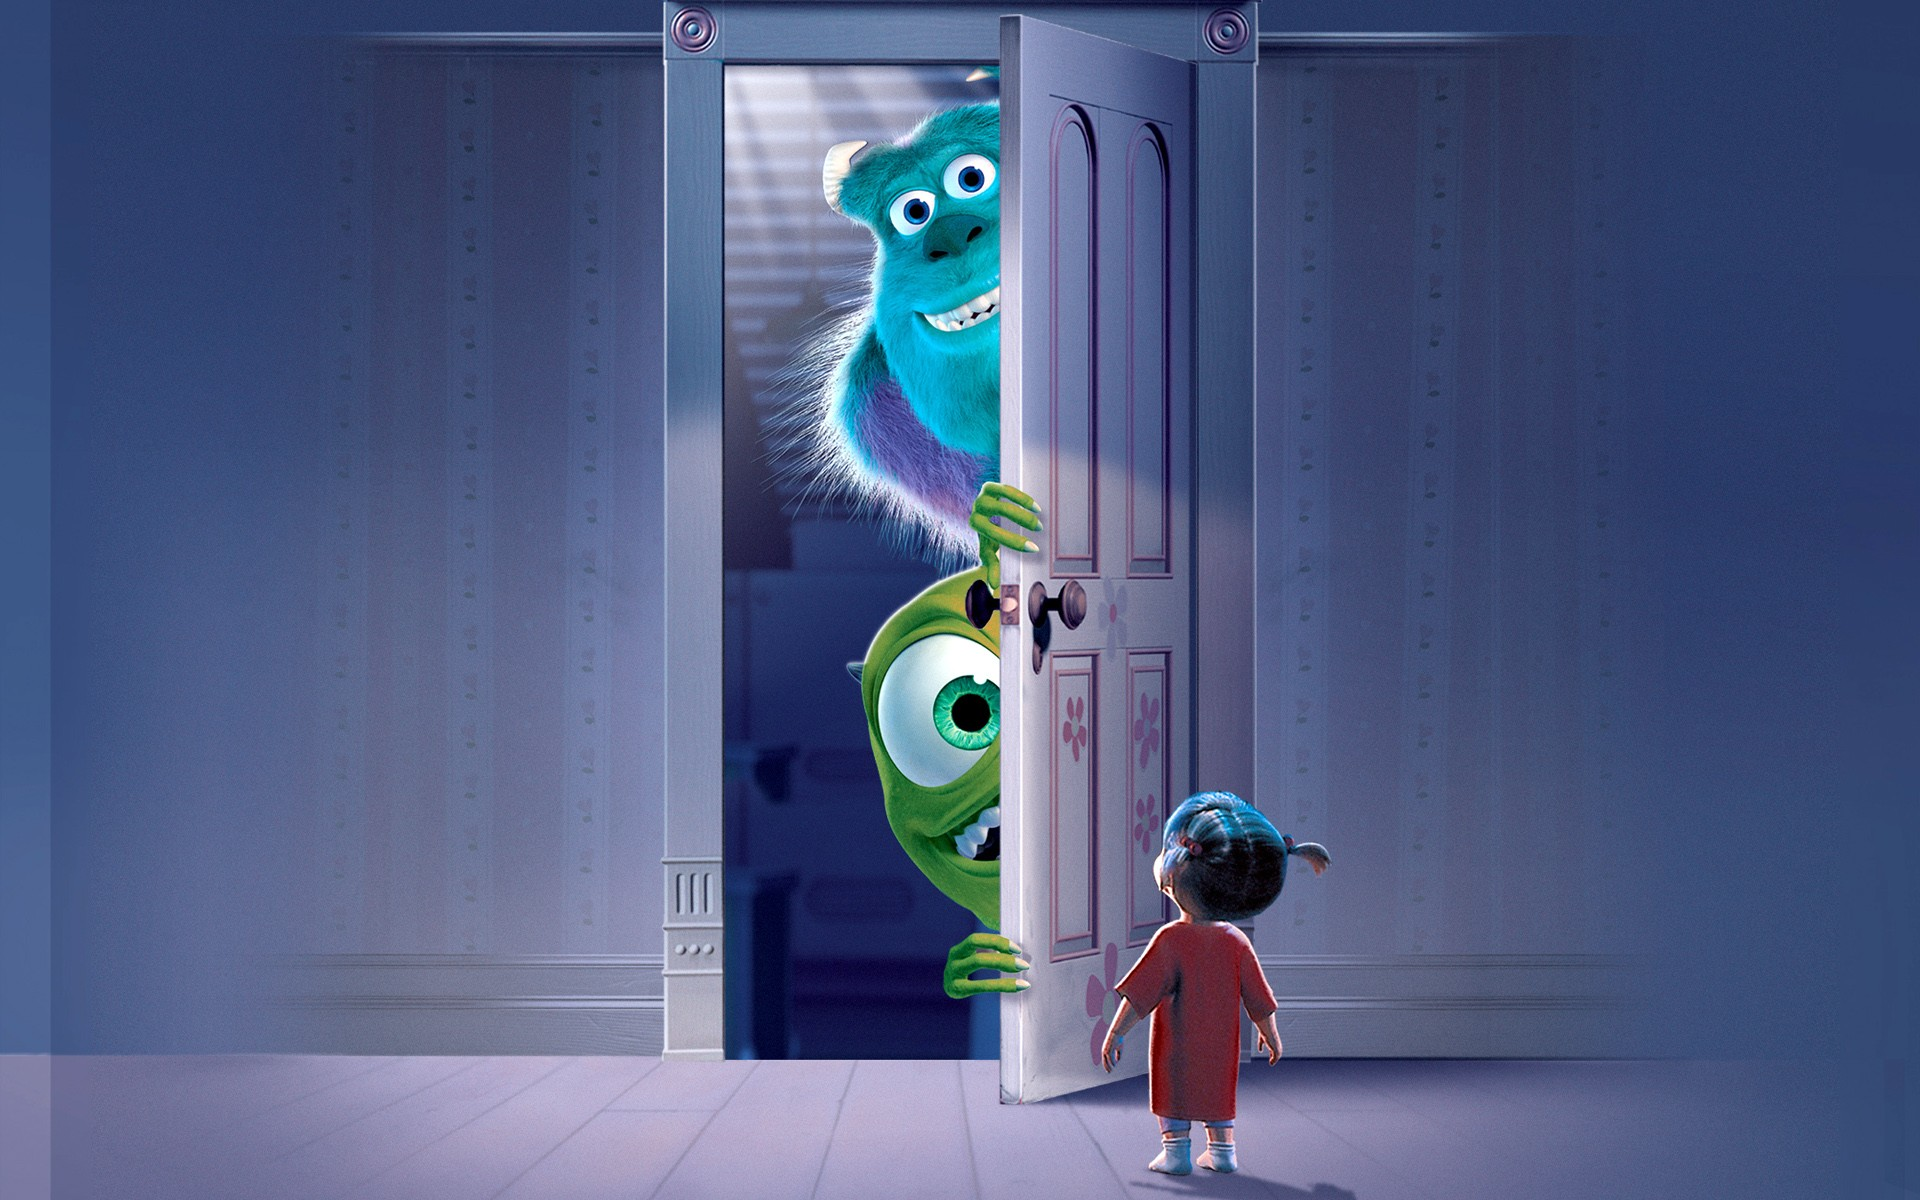 240x320 Animated Mobile Wallpapers Iphone Monsters University Movie Hd Movies 4k Wallpapers